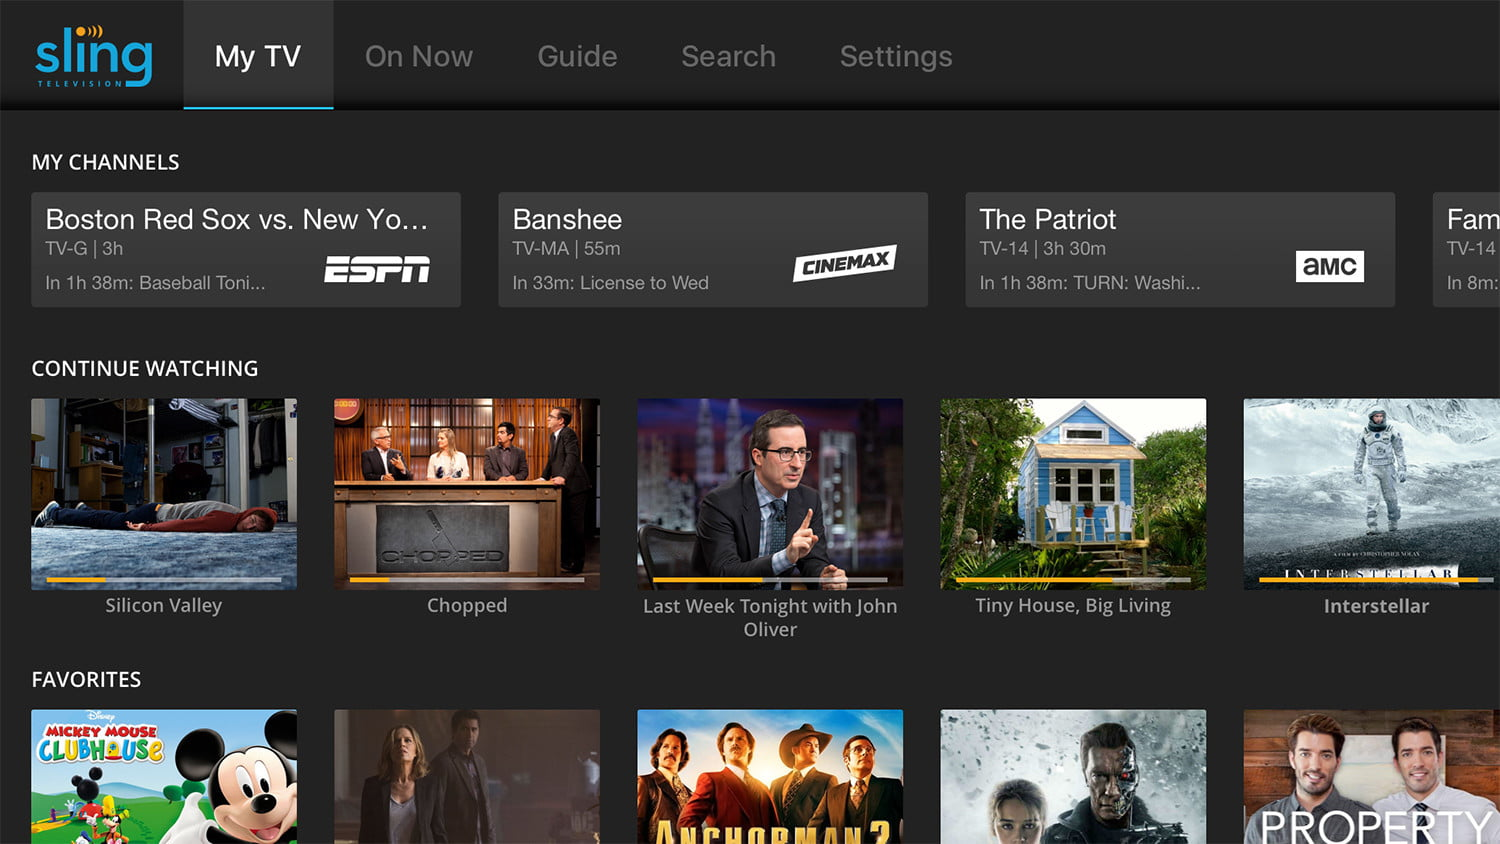 The Best Streaming Tv Services For Those Looking To Cut